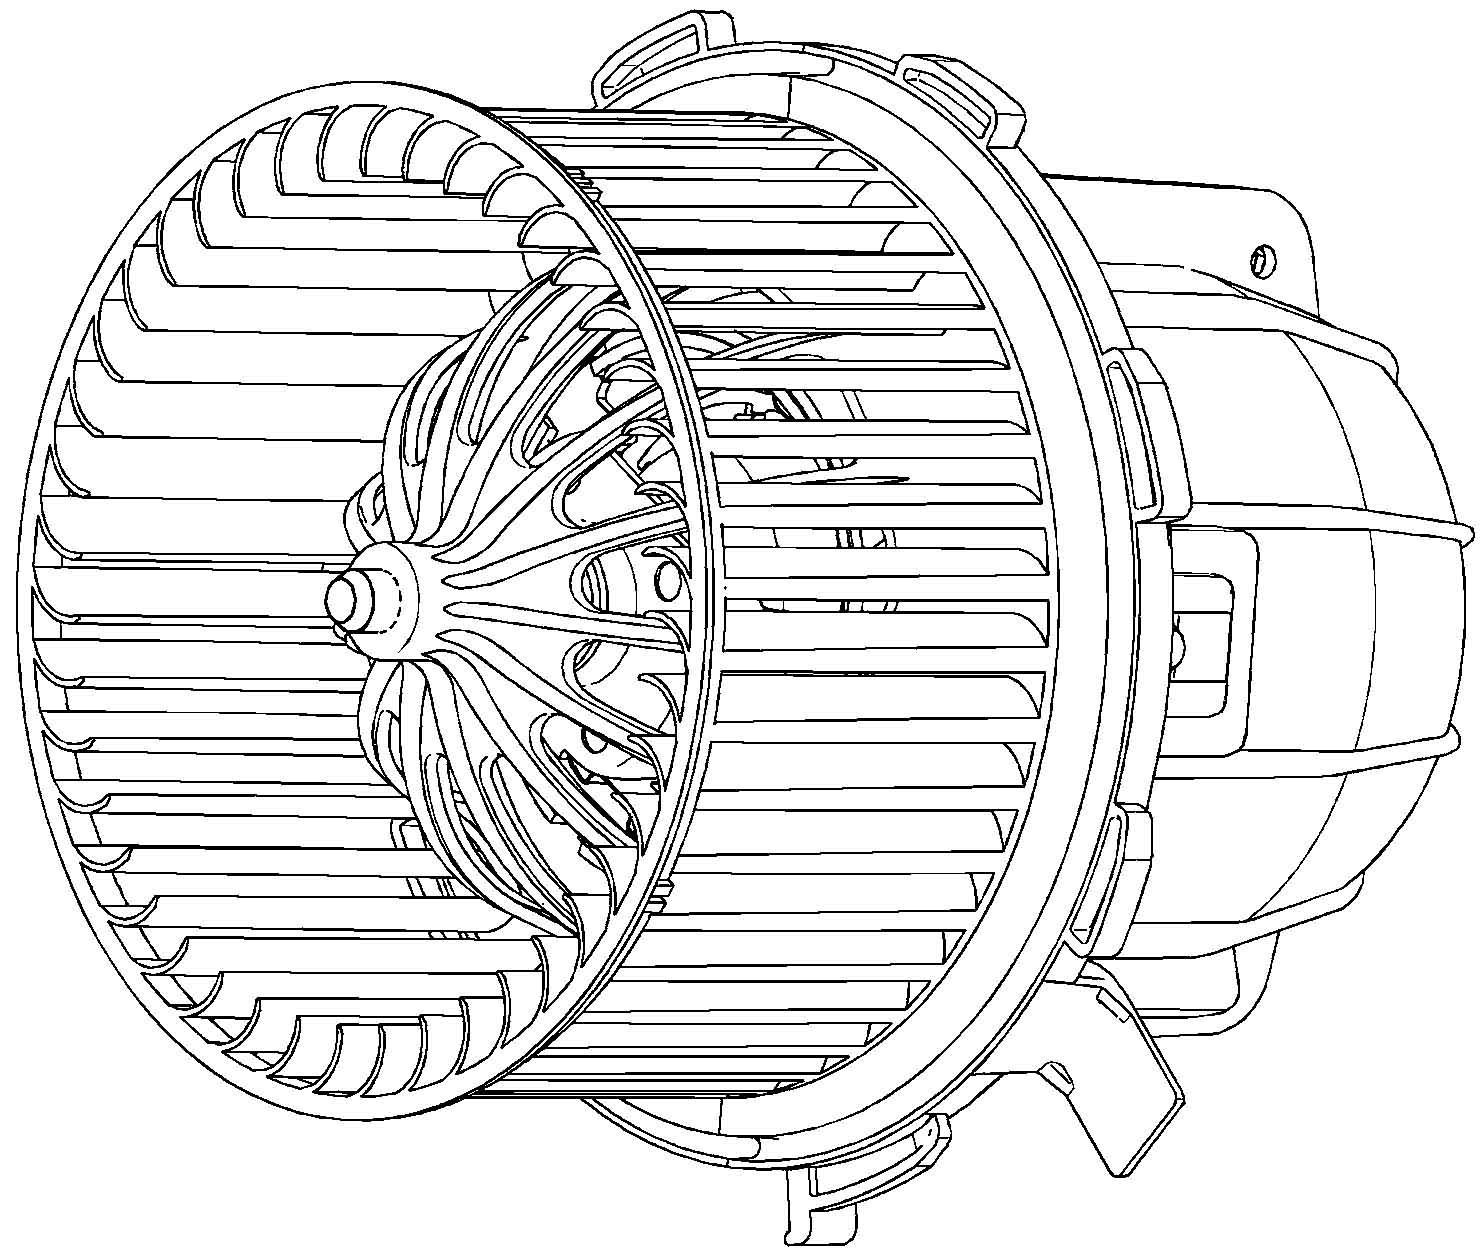 Behr Hella Service 351040251 Blower for Audi A4/A5/S5/Q5 08-